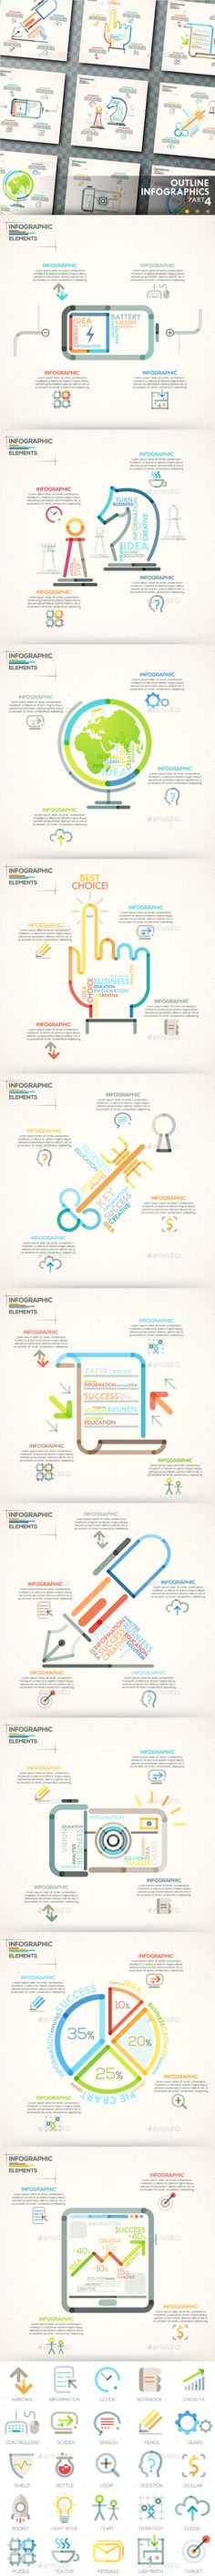 Set Of 8 Paper Infographic Templates Set of, Ai illustrator and